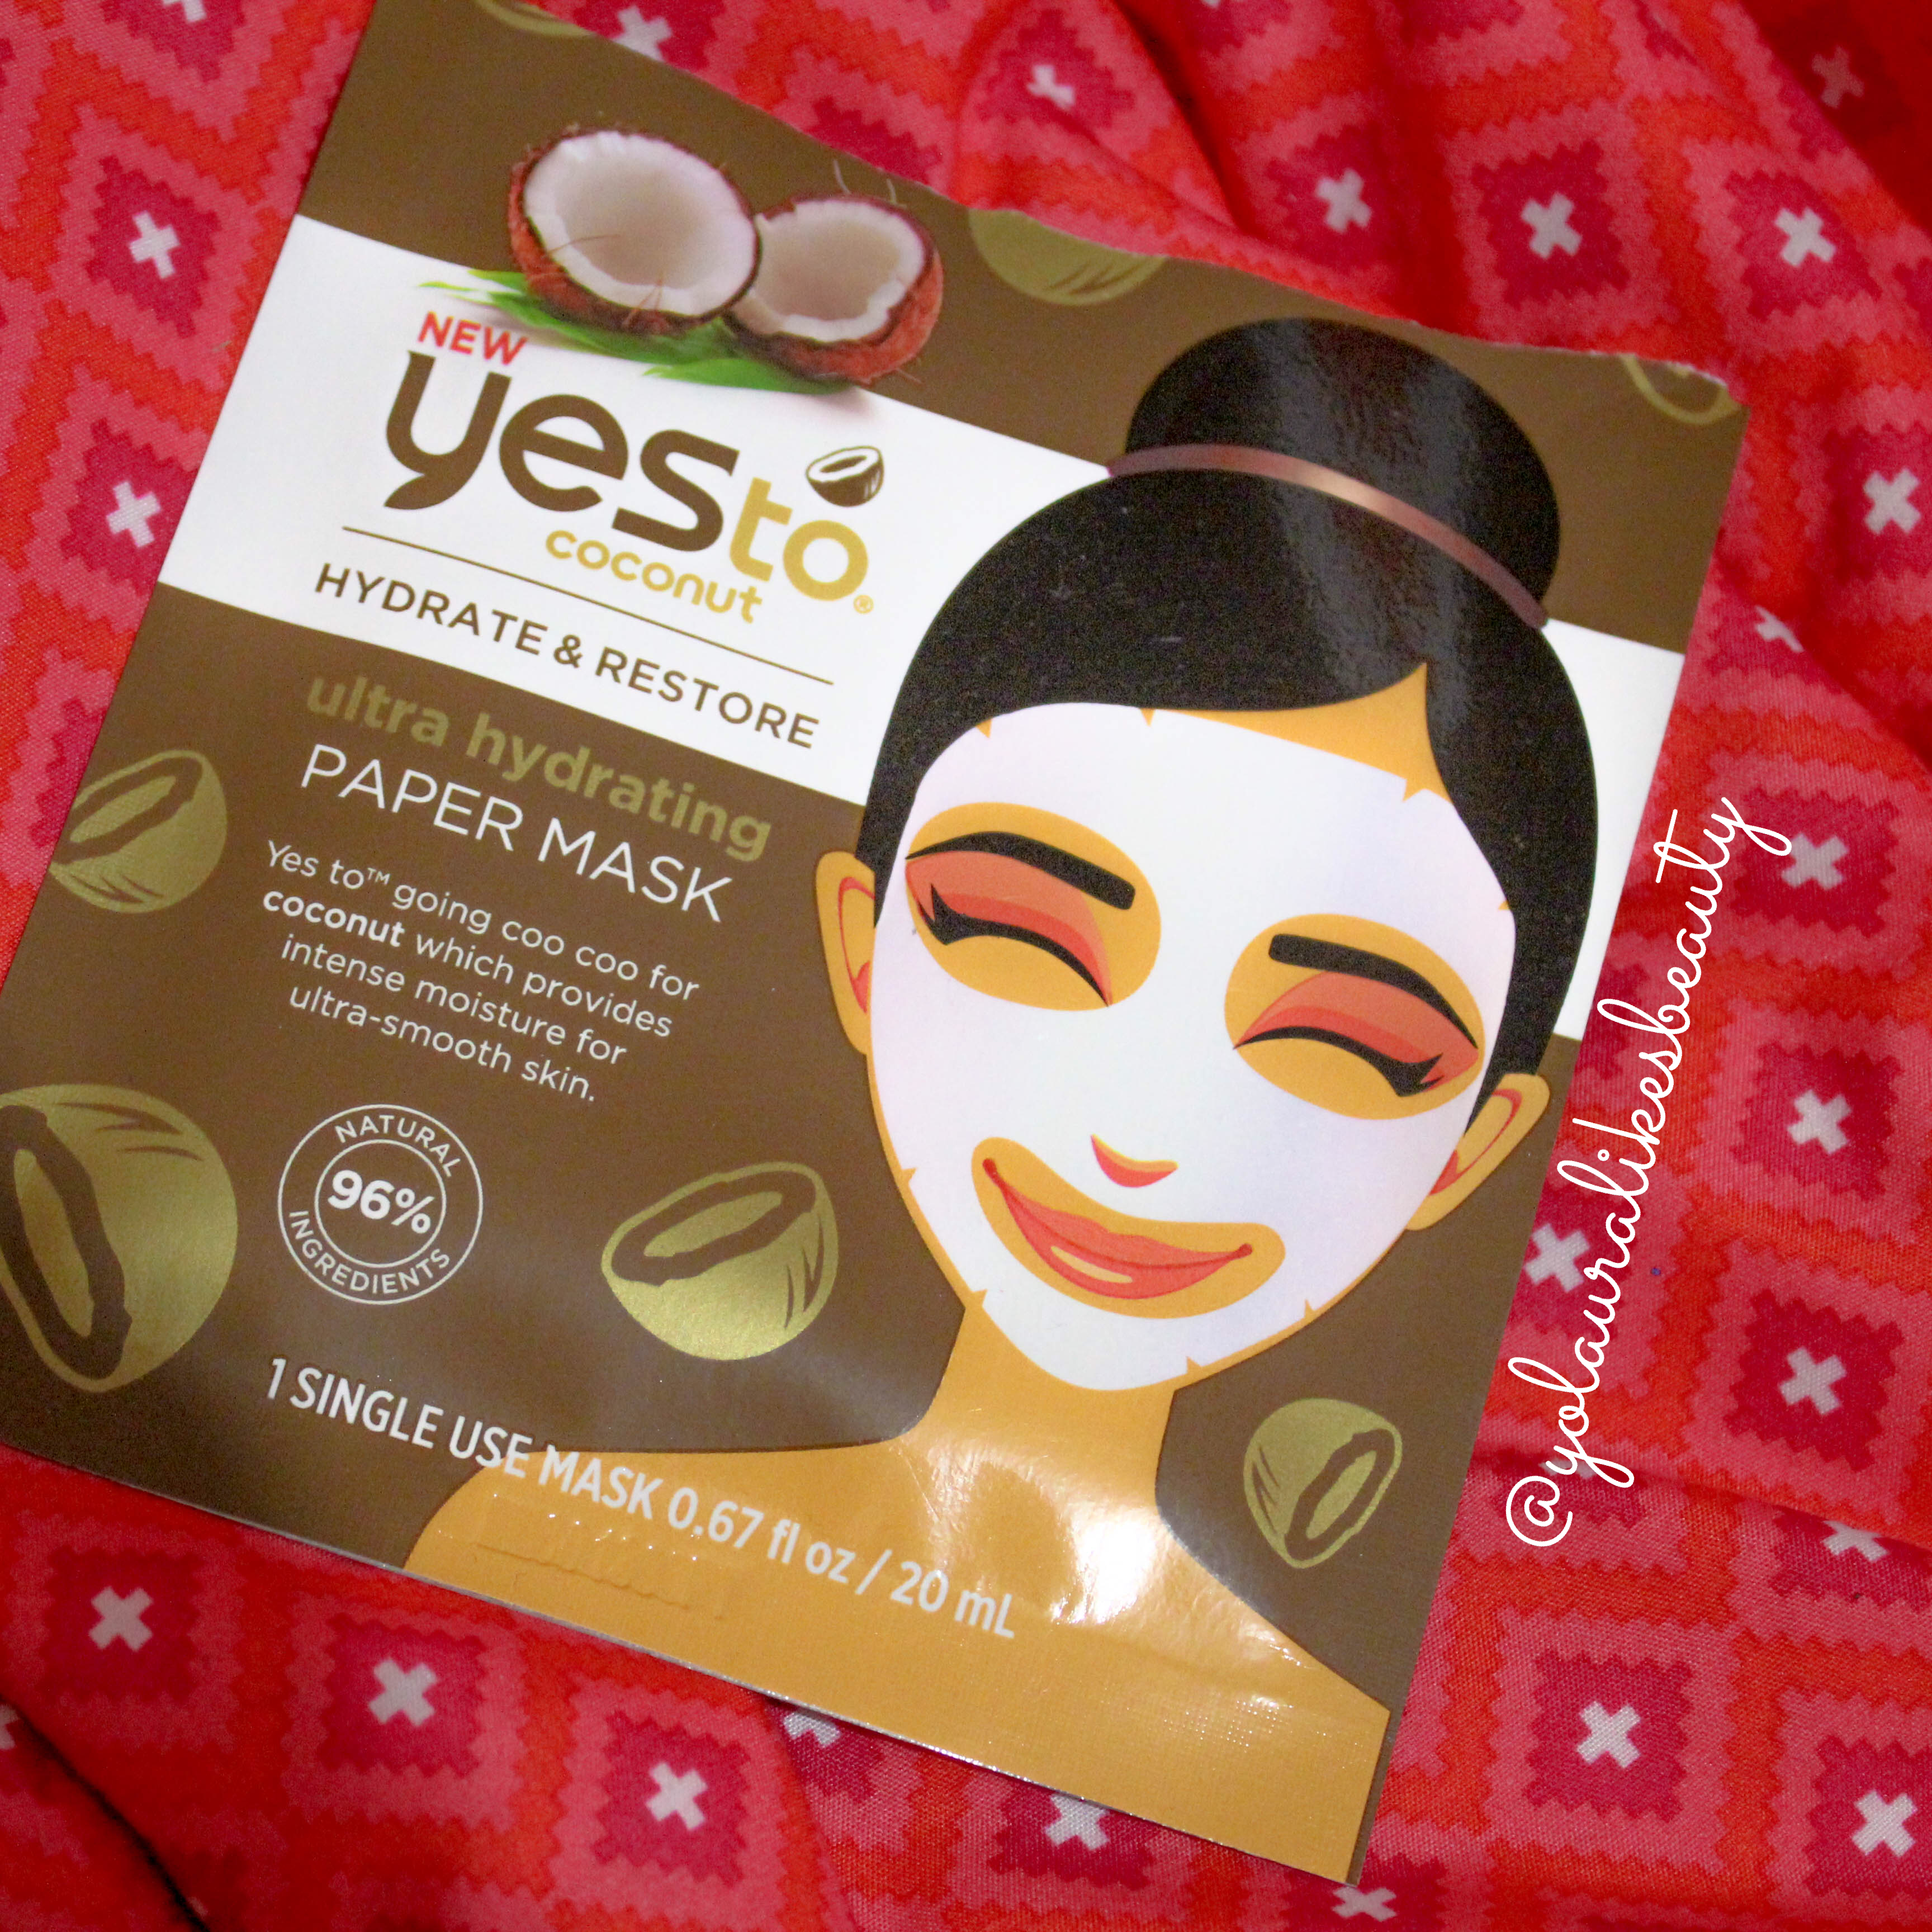 Yes to Coconuts Hydrate & Restore Ultra Hydrating Paper Mask Review